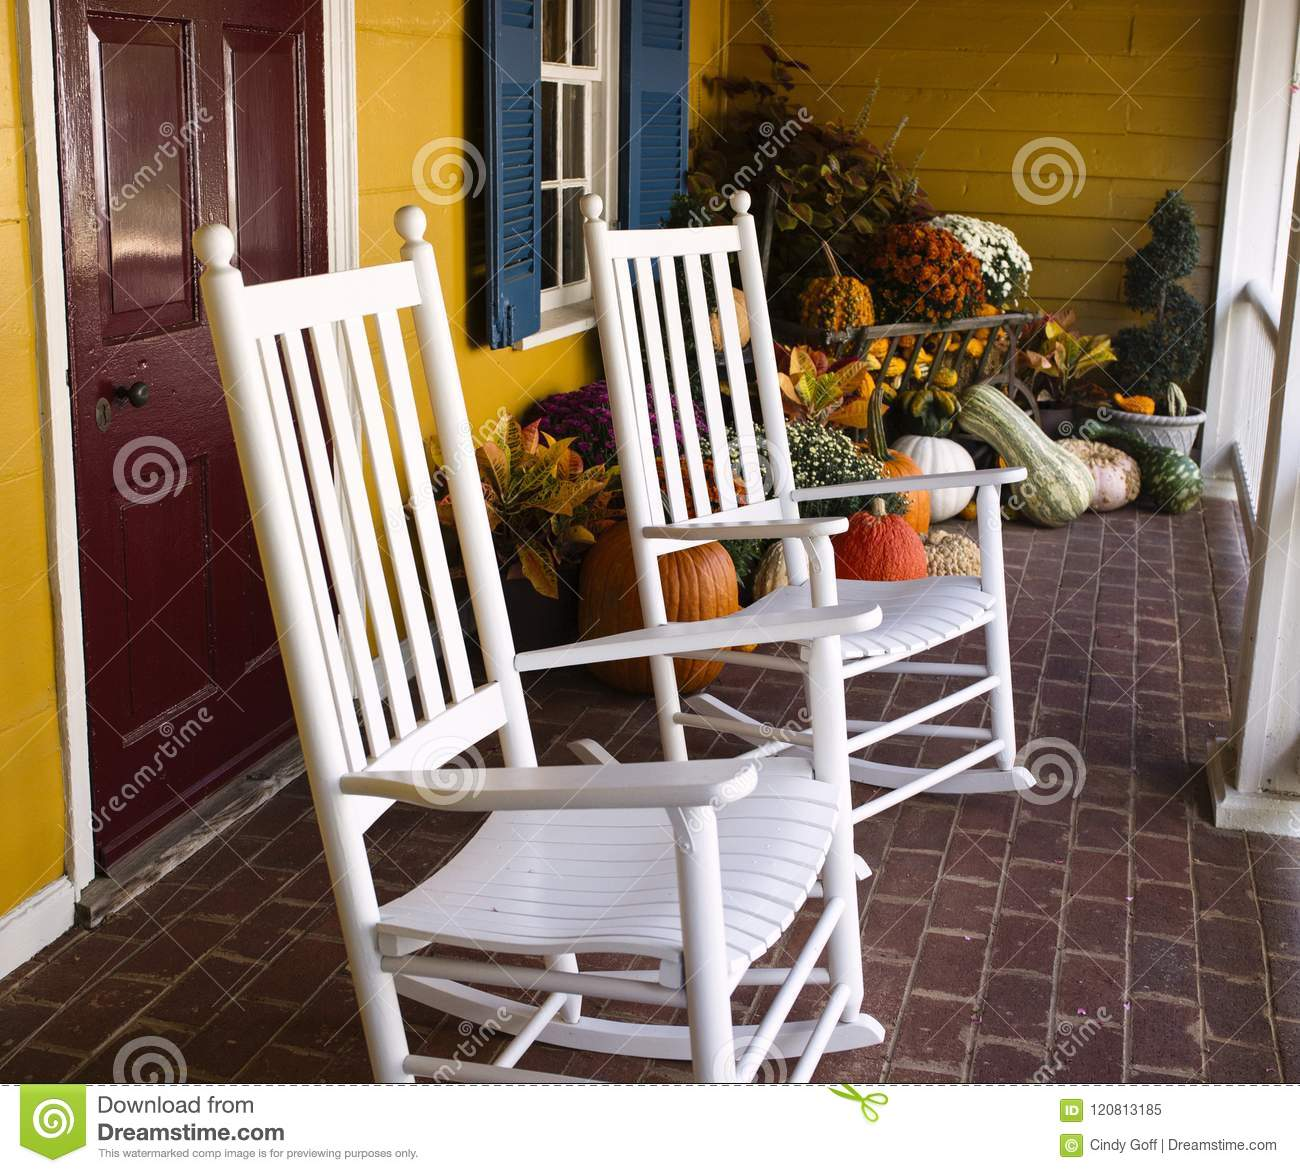 Miraculous Autumn Decoration In Virginia With Pumpkins And Rocking Gmtry Best Dining Table And Chair Ideas Images Gmtryco